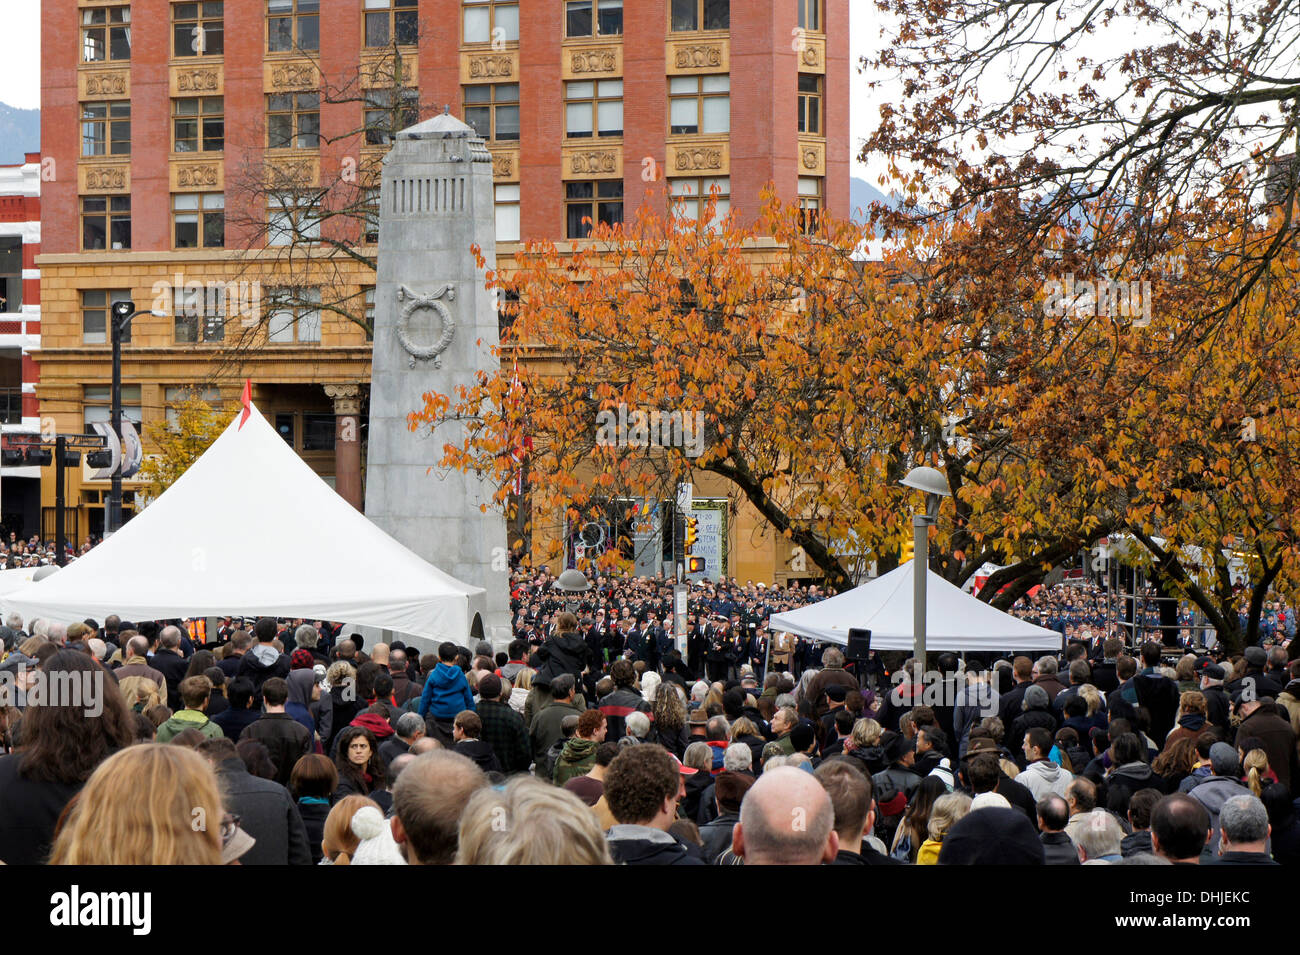 People gather at the Remembrance Day ceremonies at the Victory Square Cenotaph in downtown Vancouver, British Columbia, Canada - Stock Image